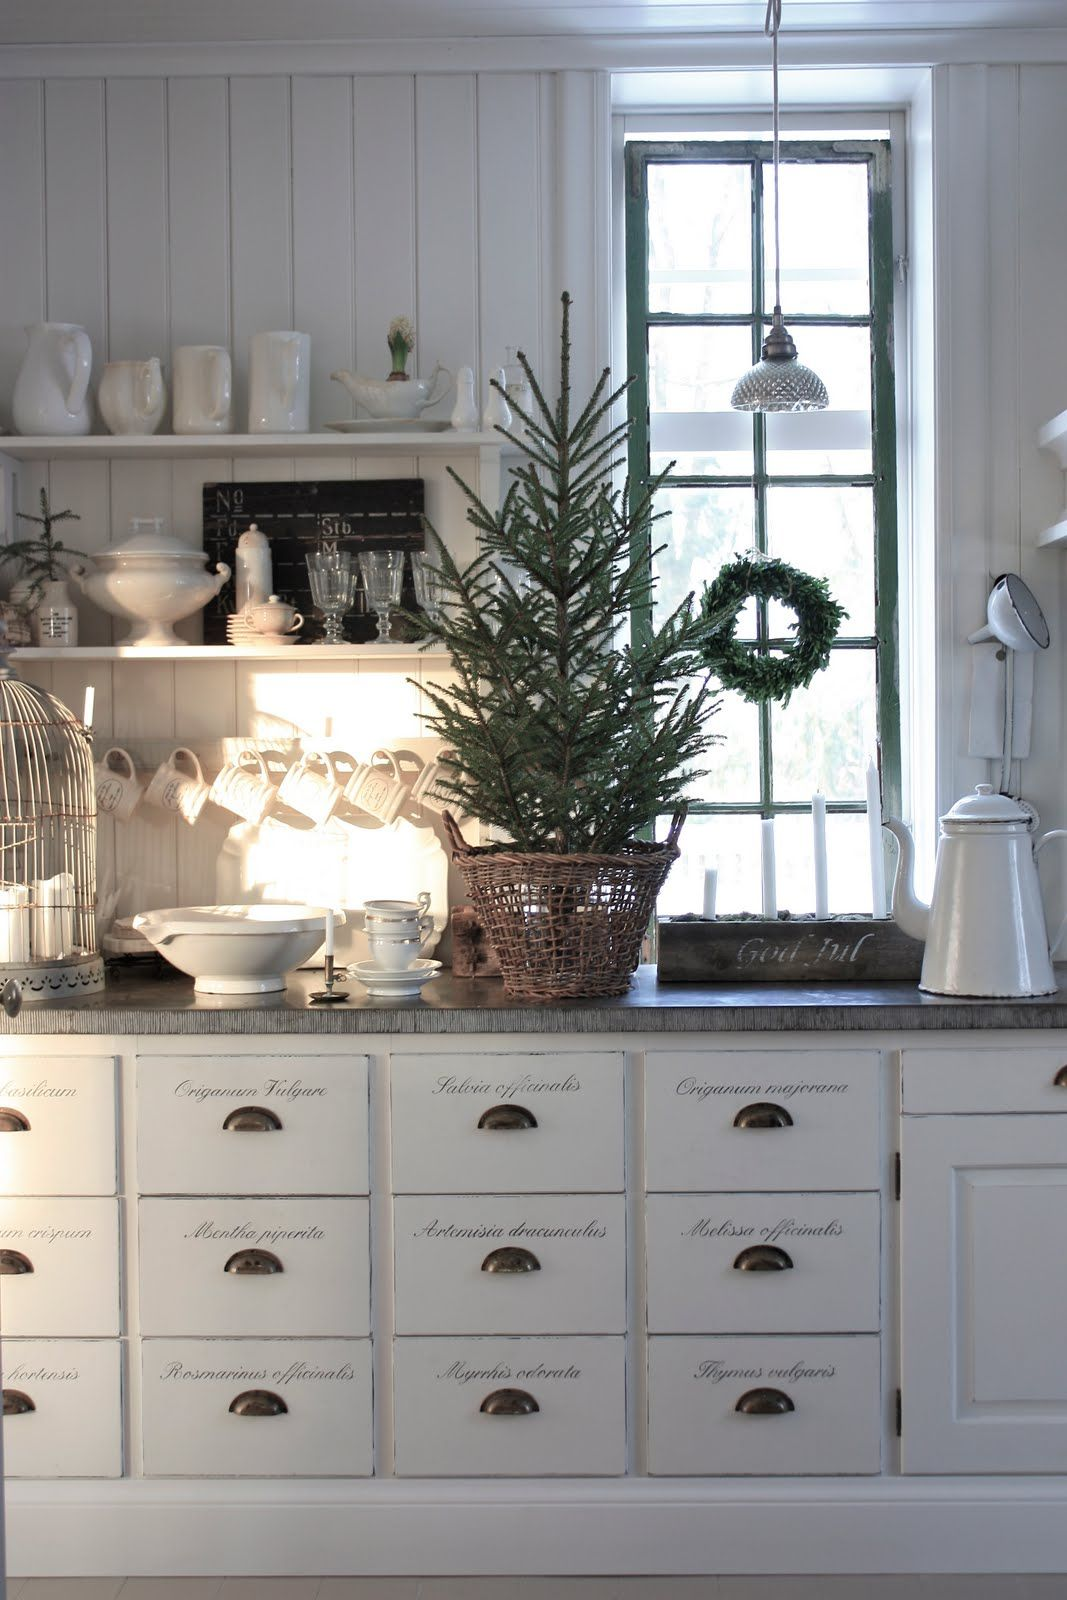 A small evergreen in the kitchen is just the right touch for my holiday decorating. I'm getting inspired and starting to plan. This lovely ...